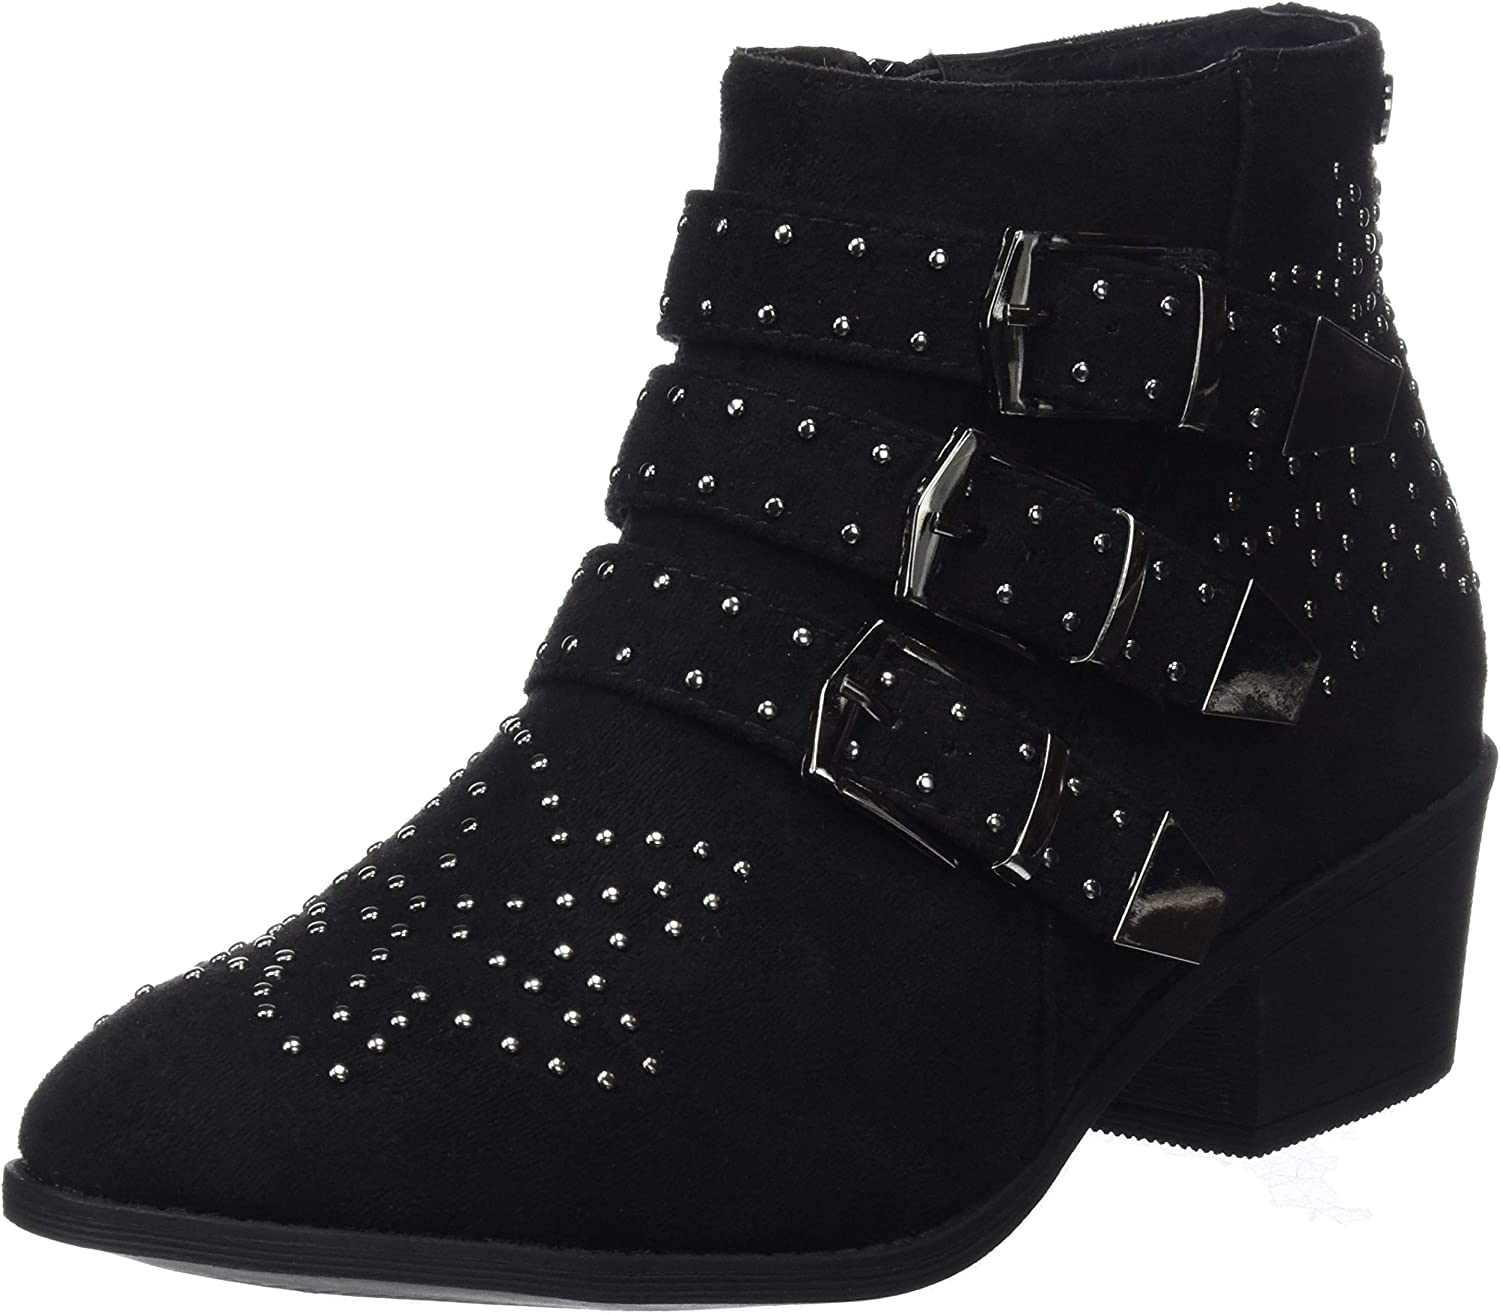 safety XTI Women's Ankle New arrival Boots